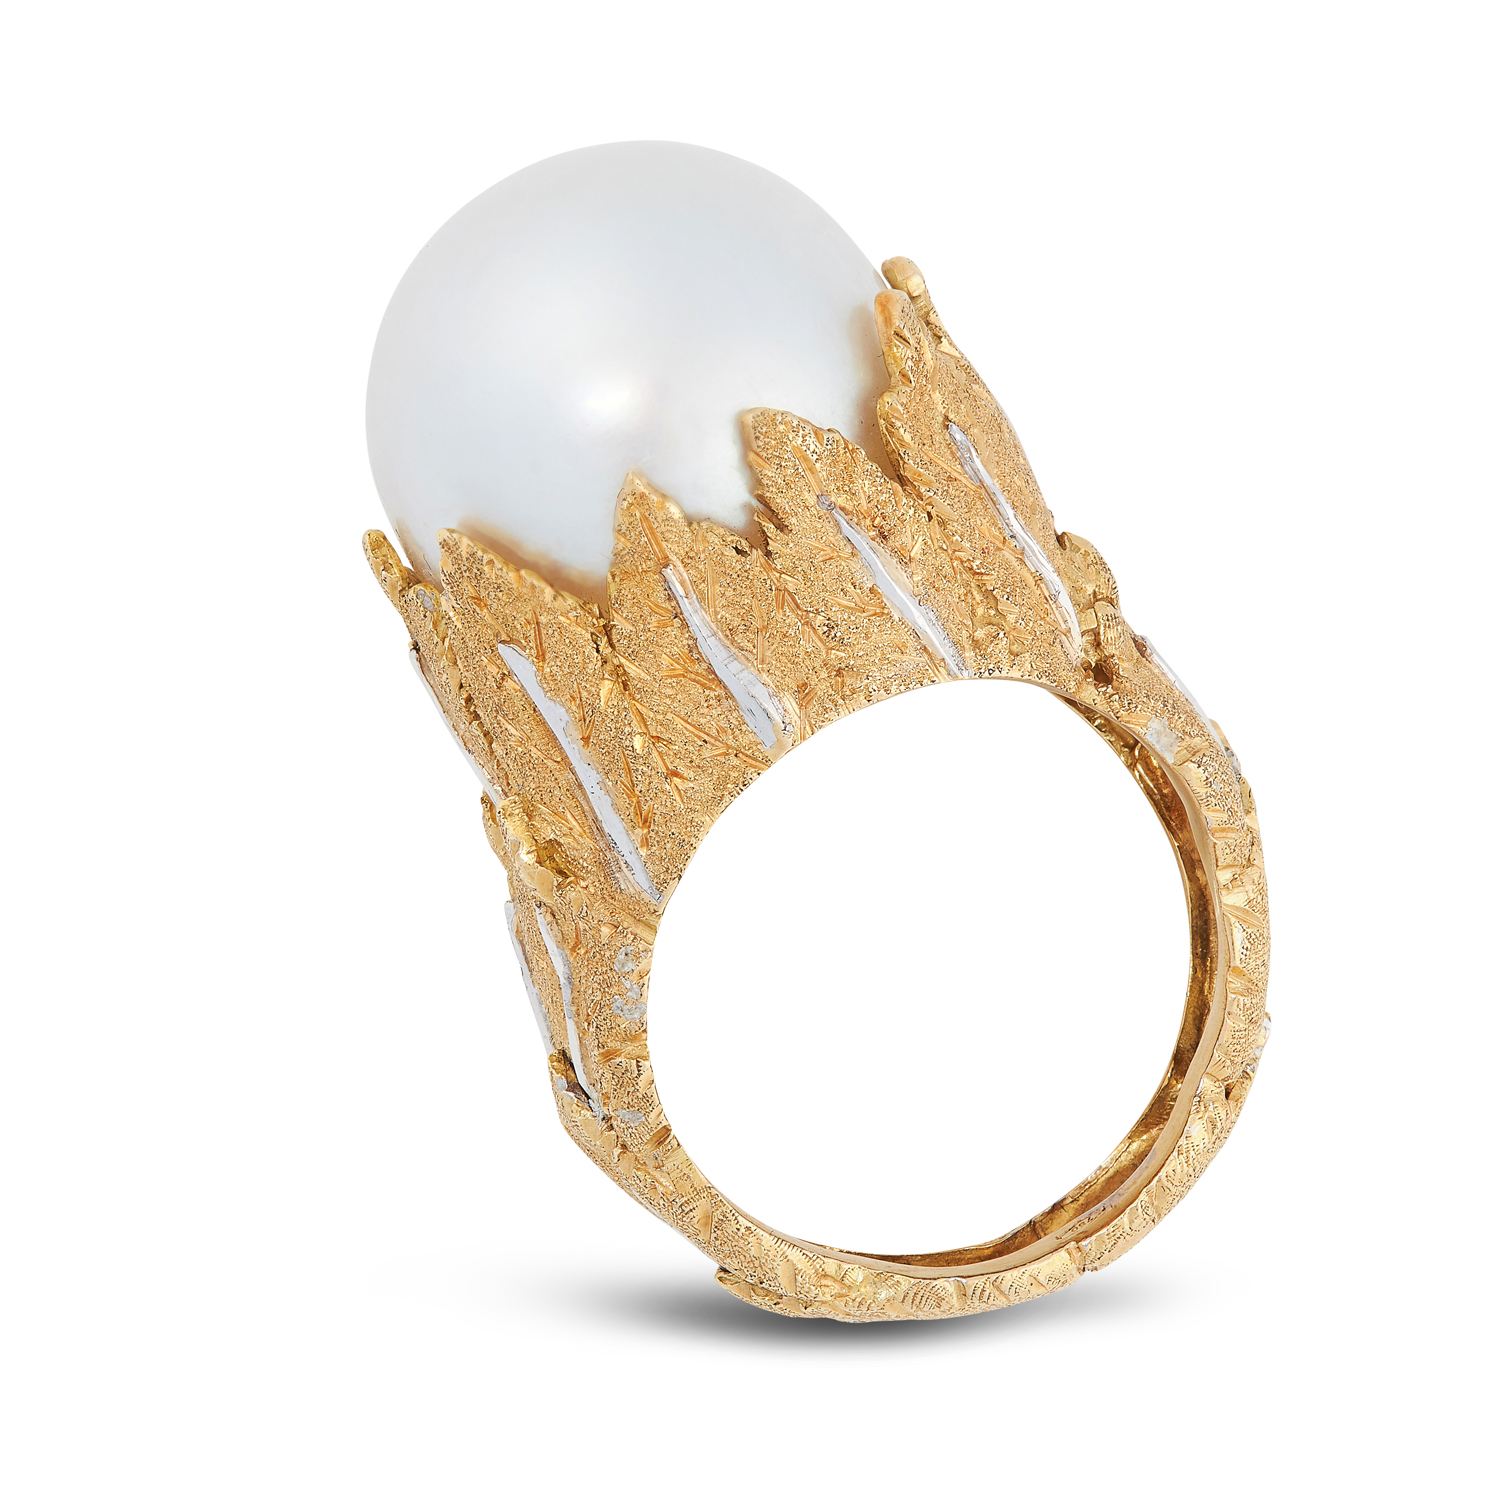 A PEARL DRESS RING, BUCCELLATI set with a central south sea pearl of 16.0mm, in an ornate setting - Image 2 of 2